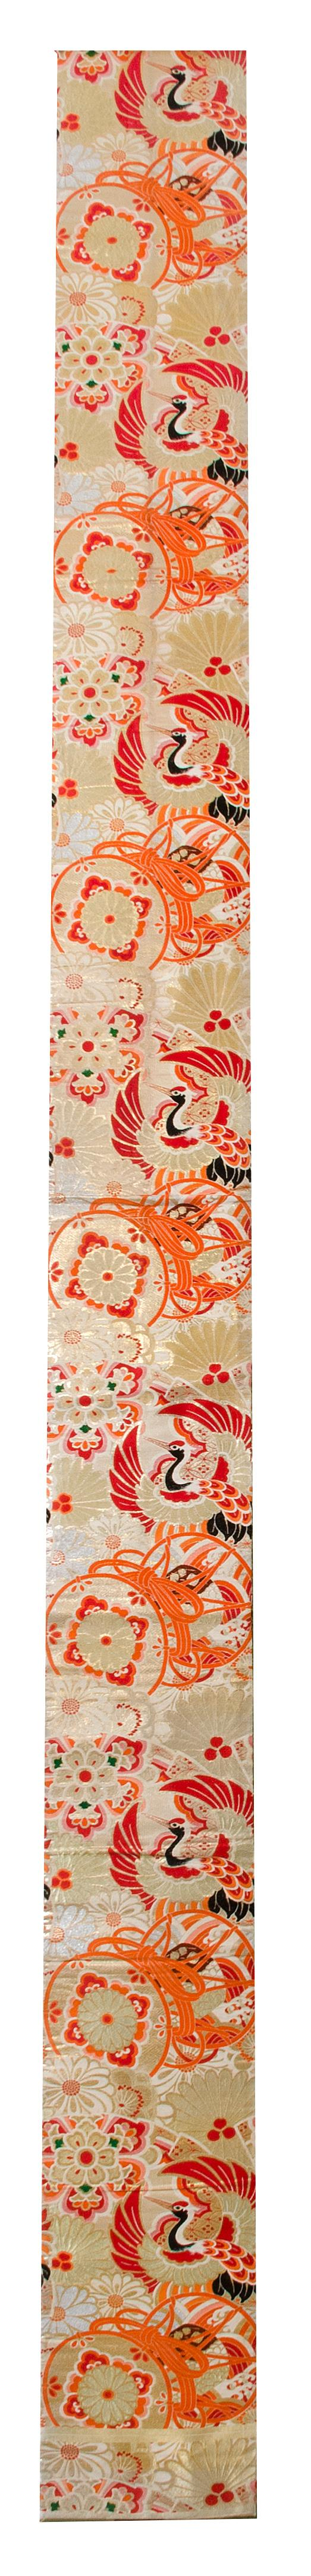 SILK BROCADE OBI With crane and chrysanthemum design.